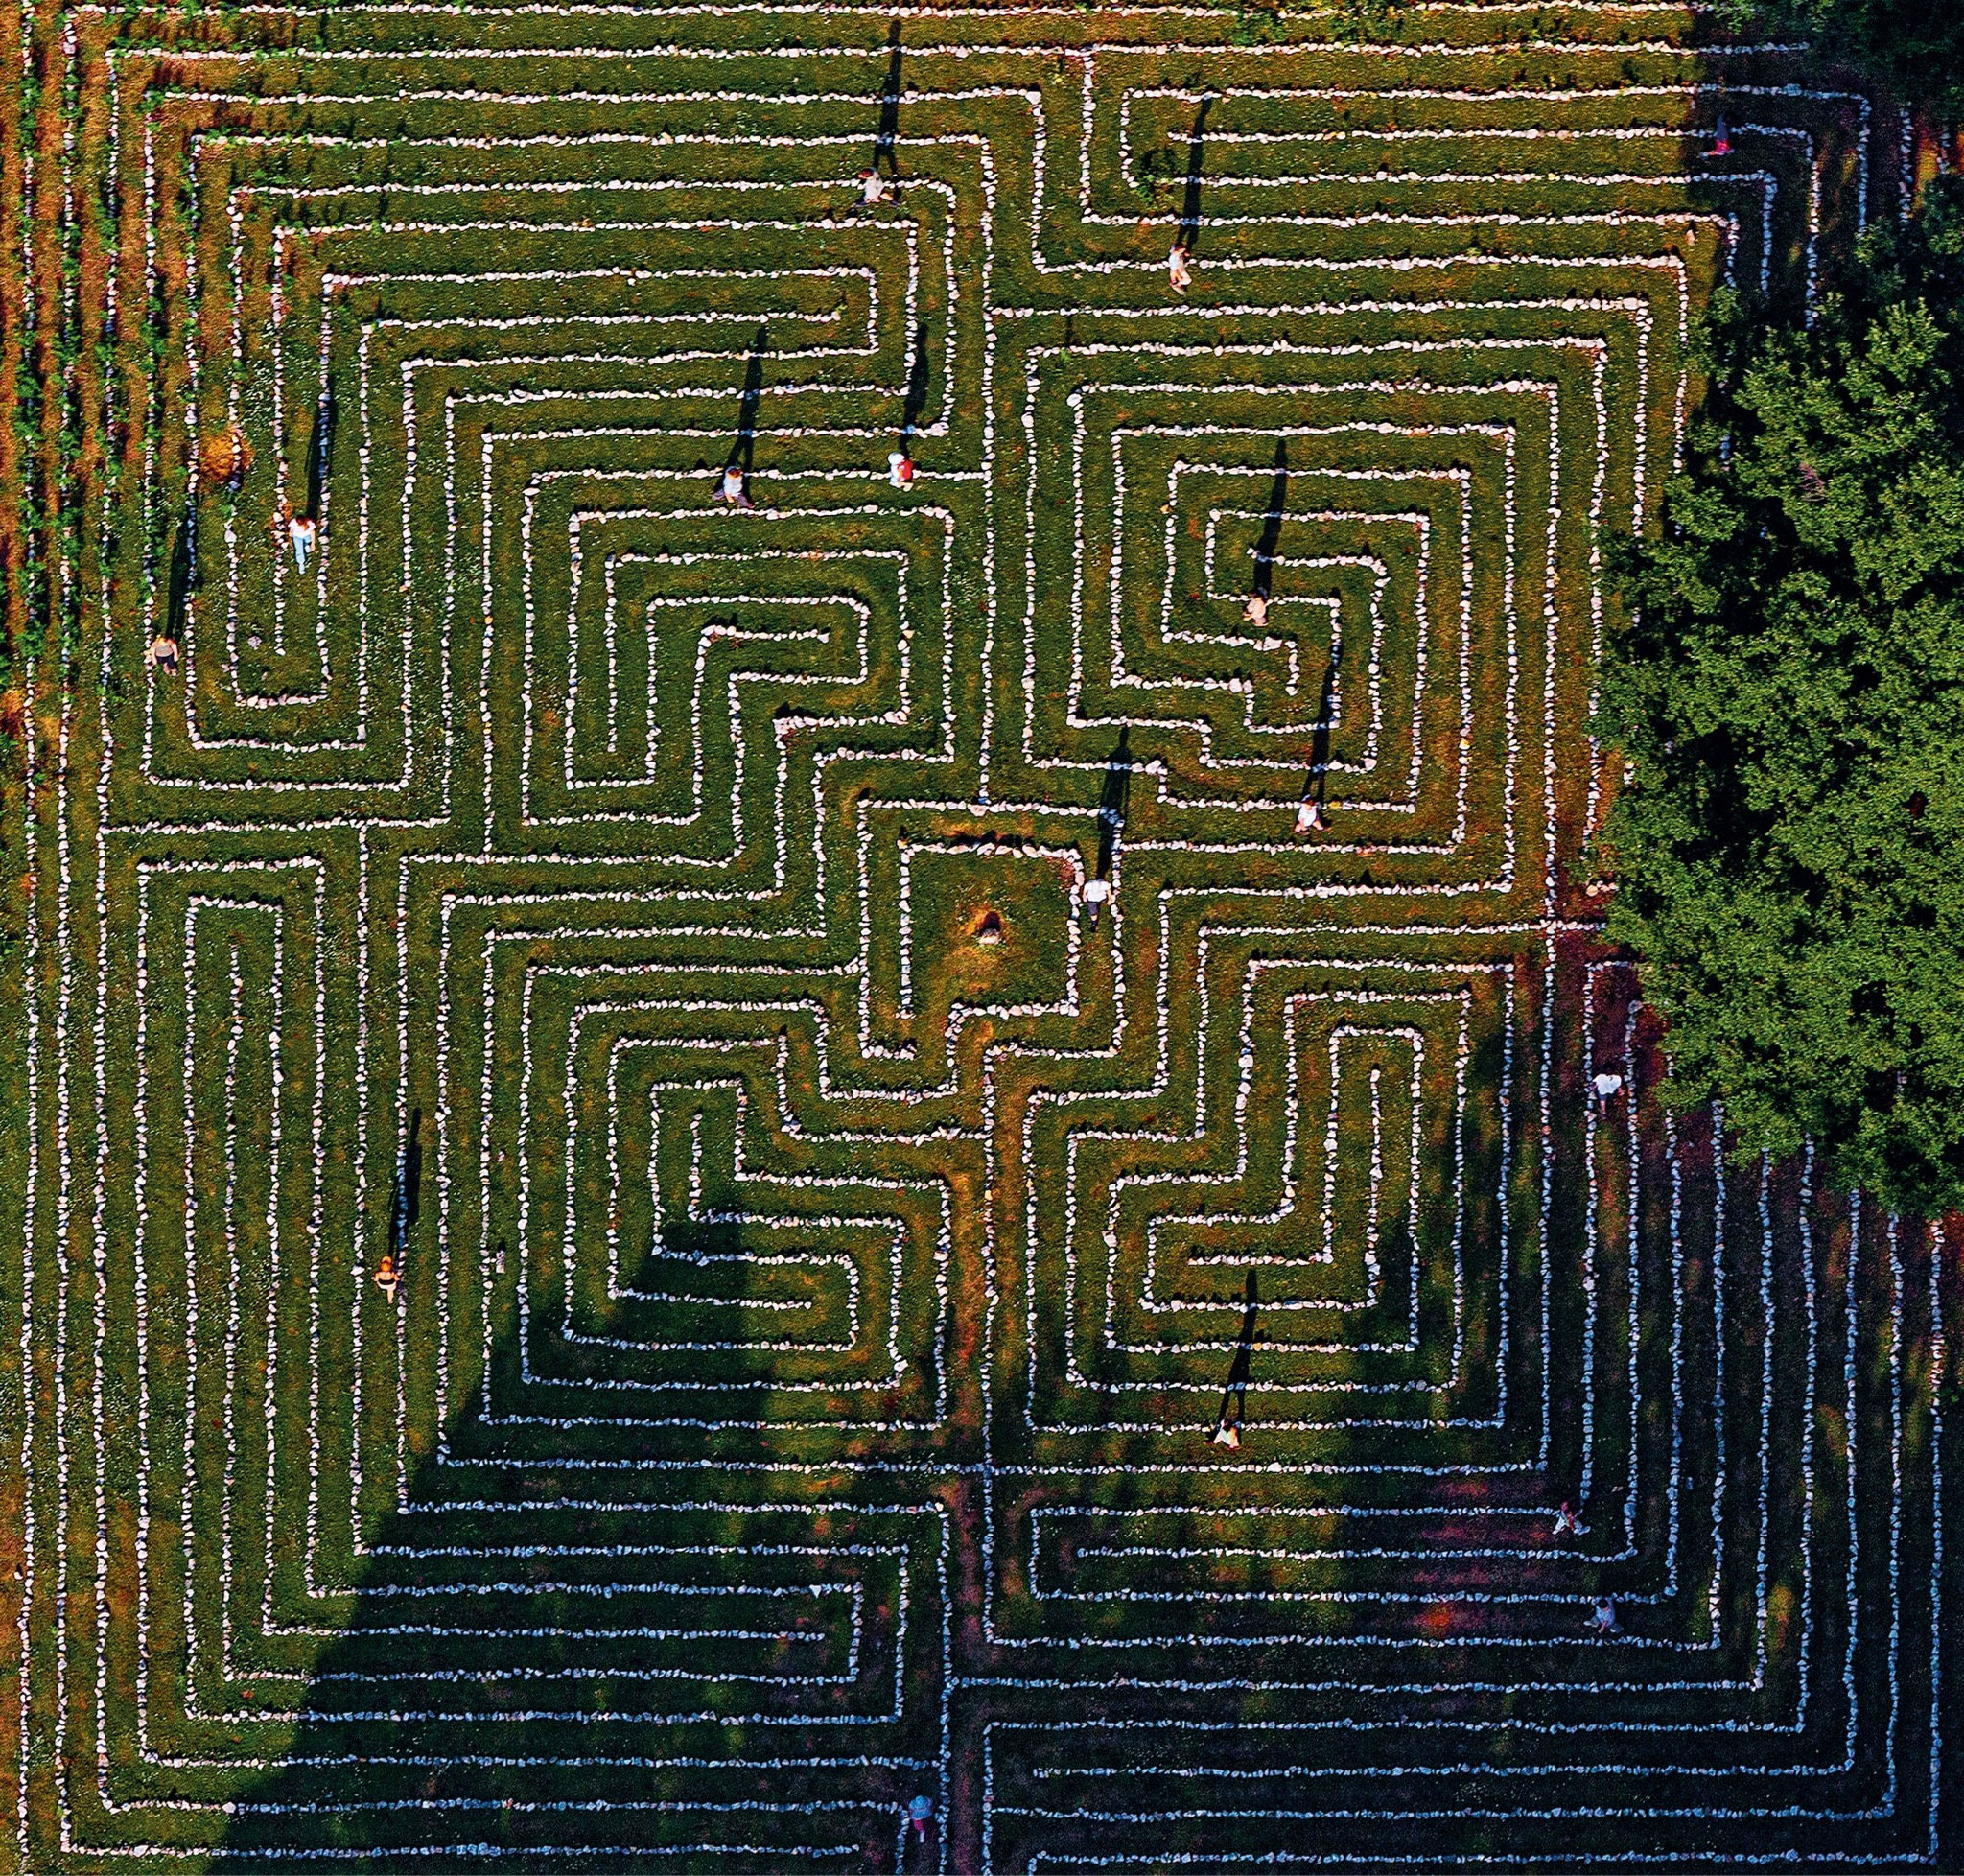 the National Geographic photo of Cres Island stone labyrinth.